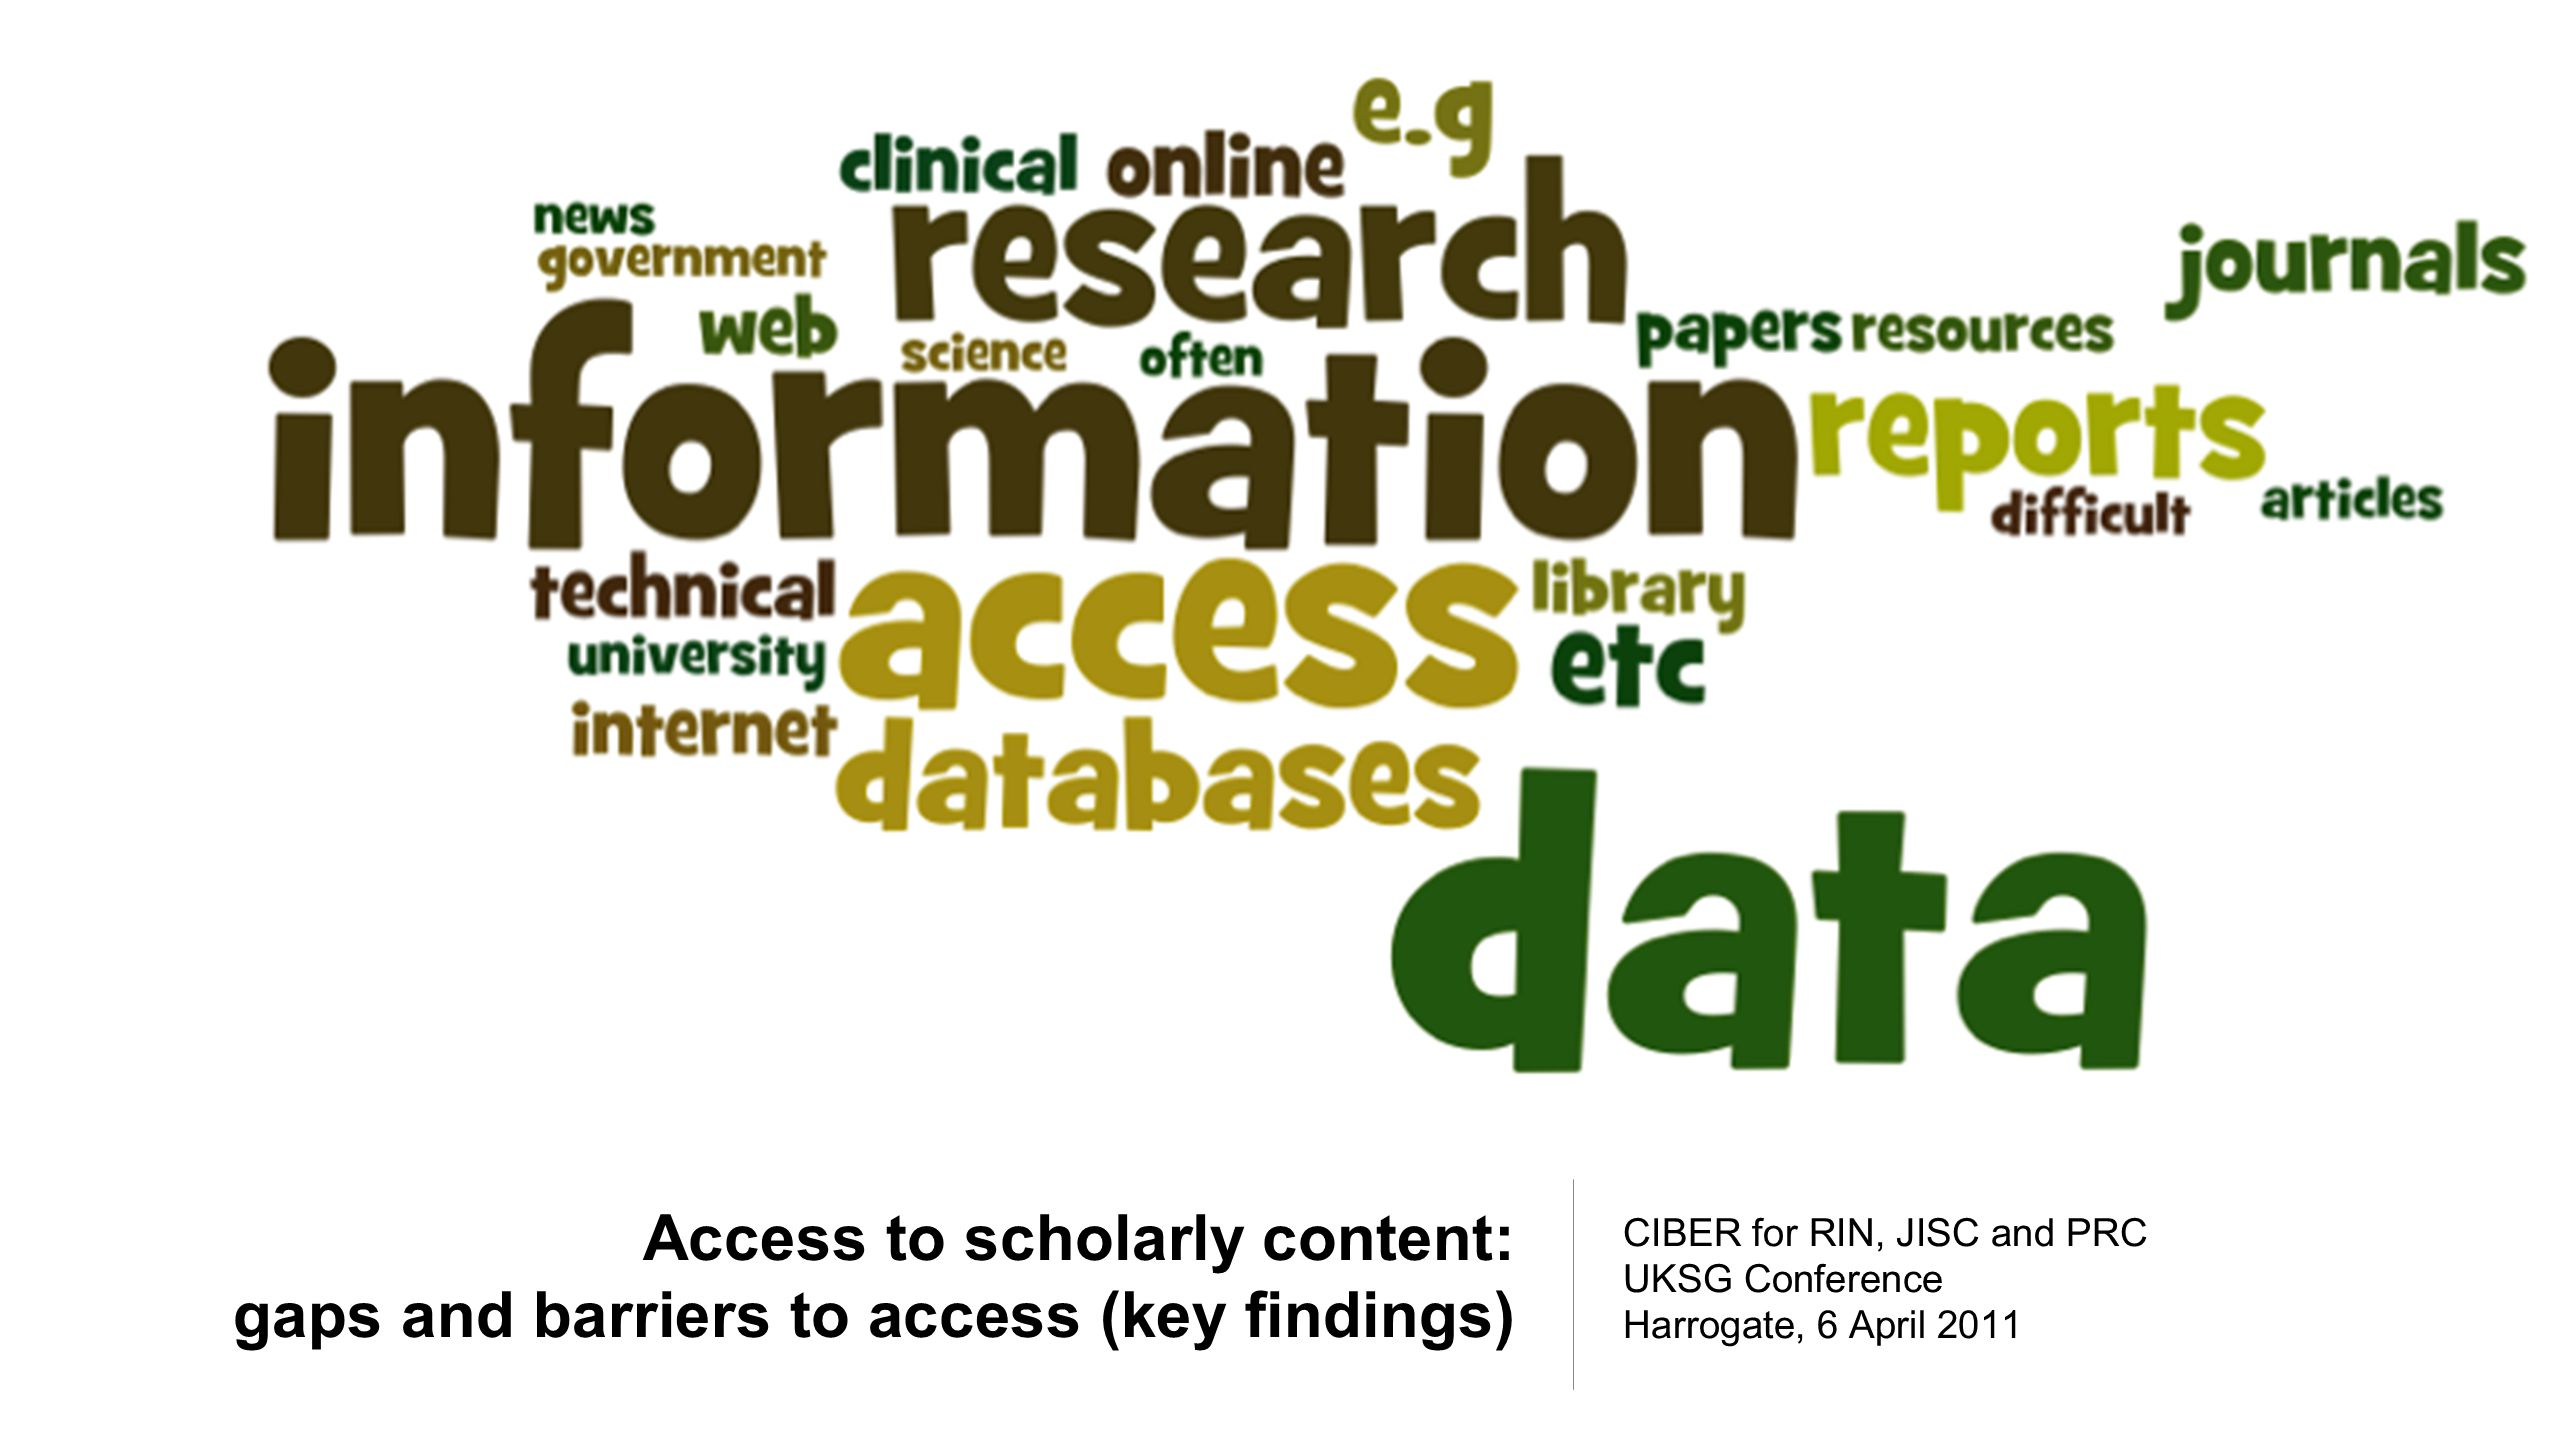 Access to scholarly content: gaps and barriers to access (key findings) CIBER for RIN, JISC and PRC UKSG Conference Harrogate, 6 April 2011